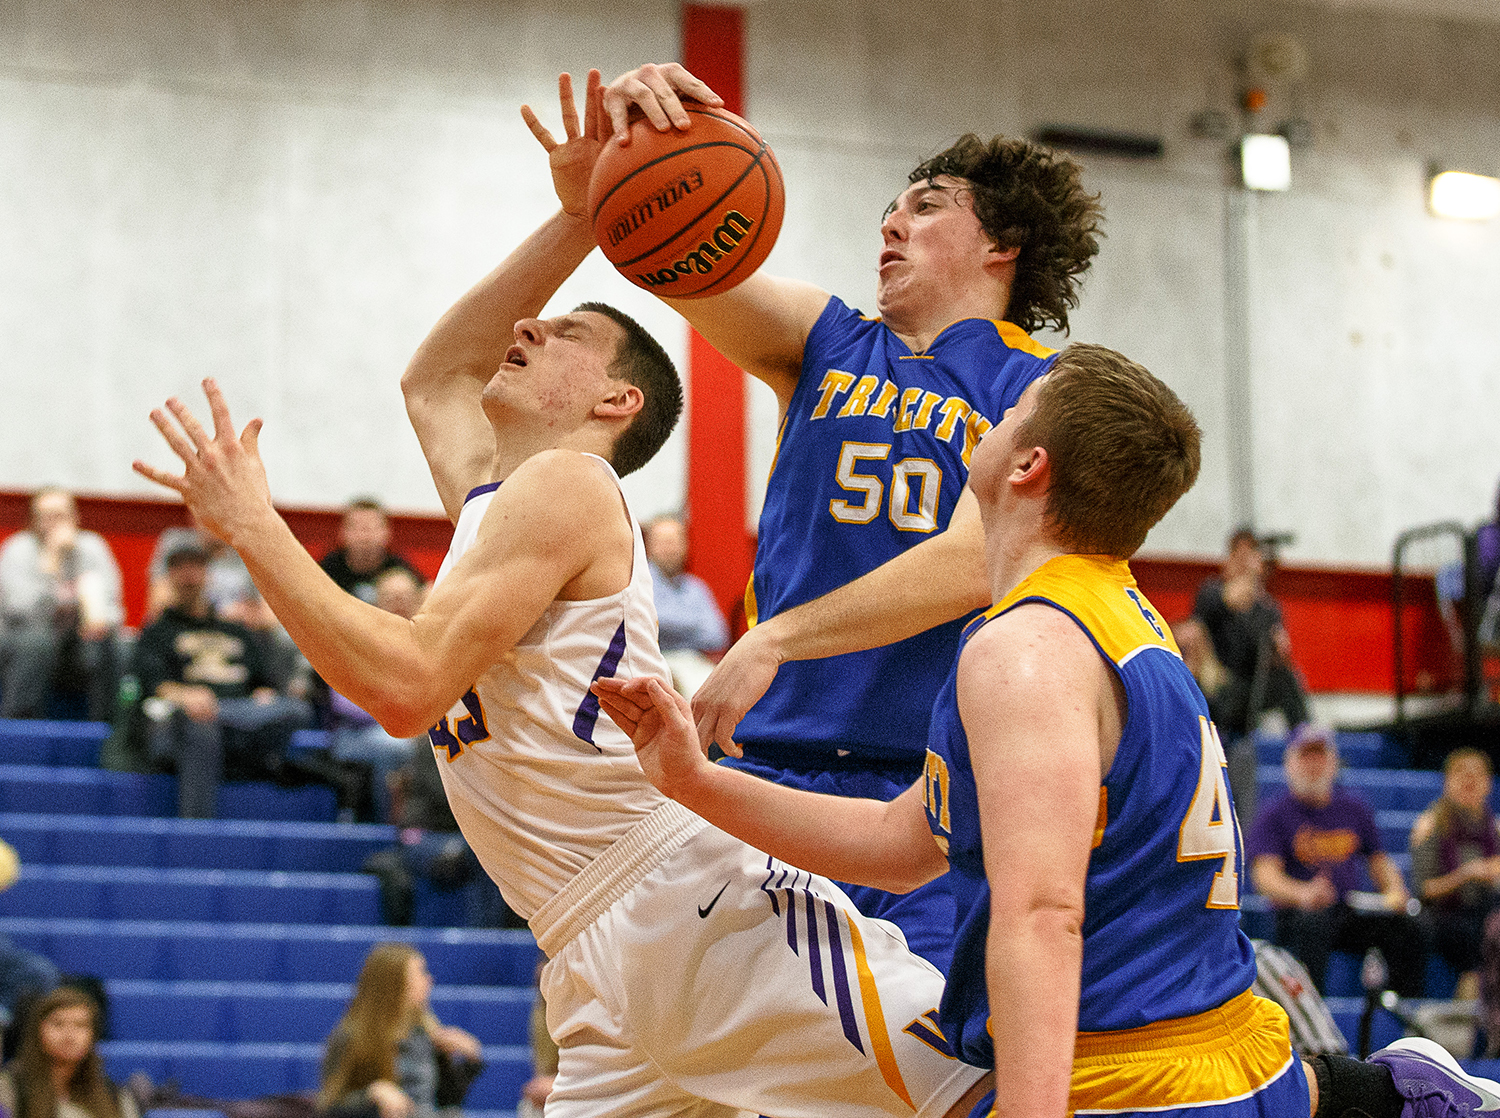 Buffalo Tri-City's Eldon Largent (50) blocks a shot from Williamsville's Scott O'Conner (43) in the second half during opening night of the Boys Sangamon County Tournament at Lincoln Land Community College's Cass Gymnasium, Monday, Jan. 8, 2018, in Springfield, Ill. [Justin L. Fowler/The State Journal-Register]